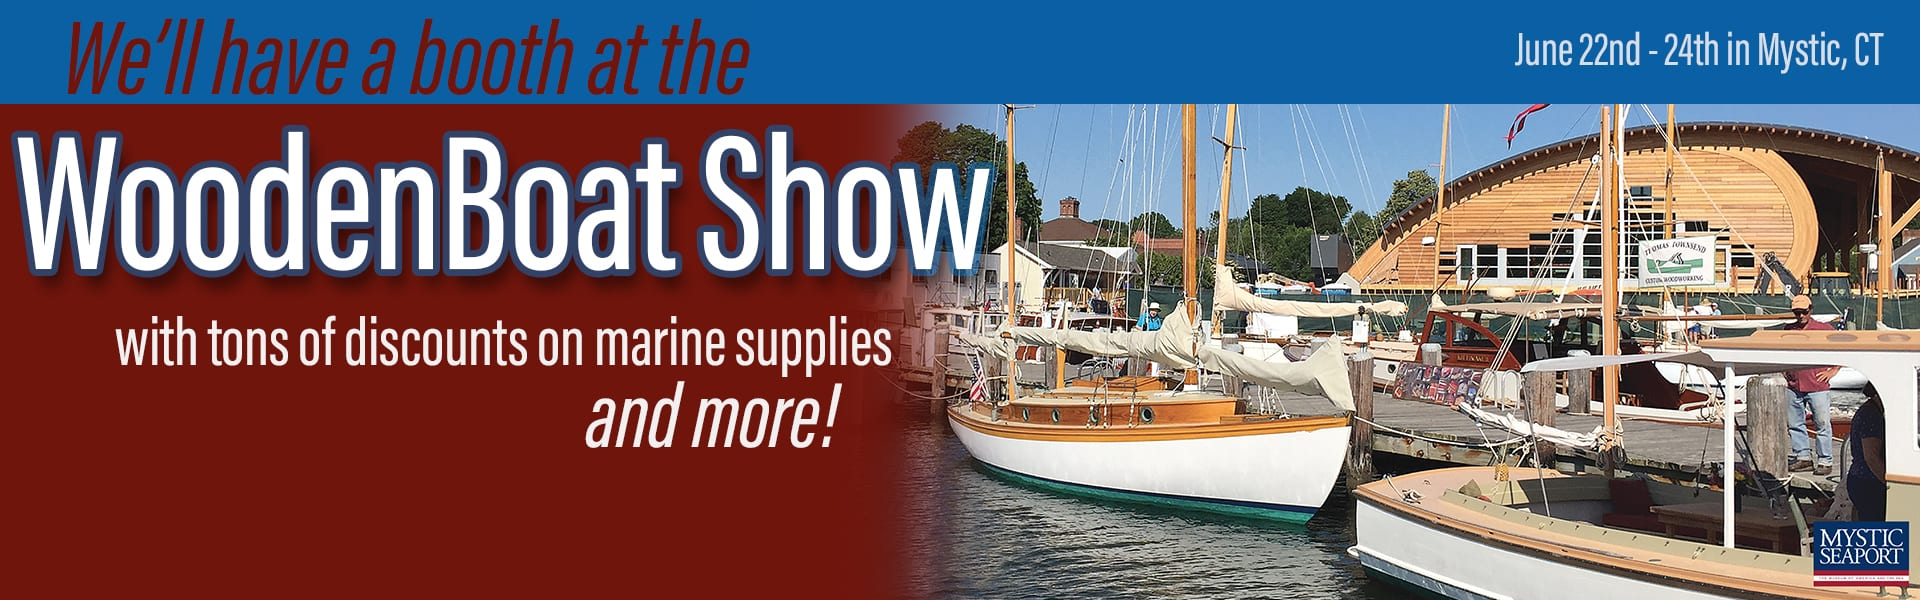 Visit HM at the WoodenBoat Show!